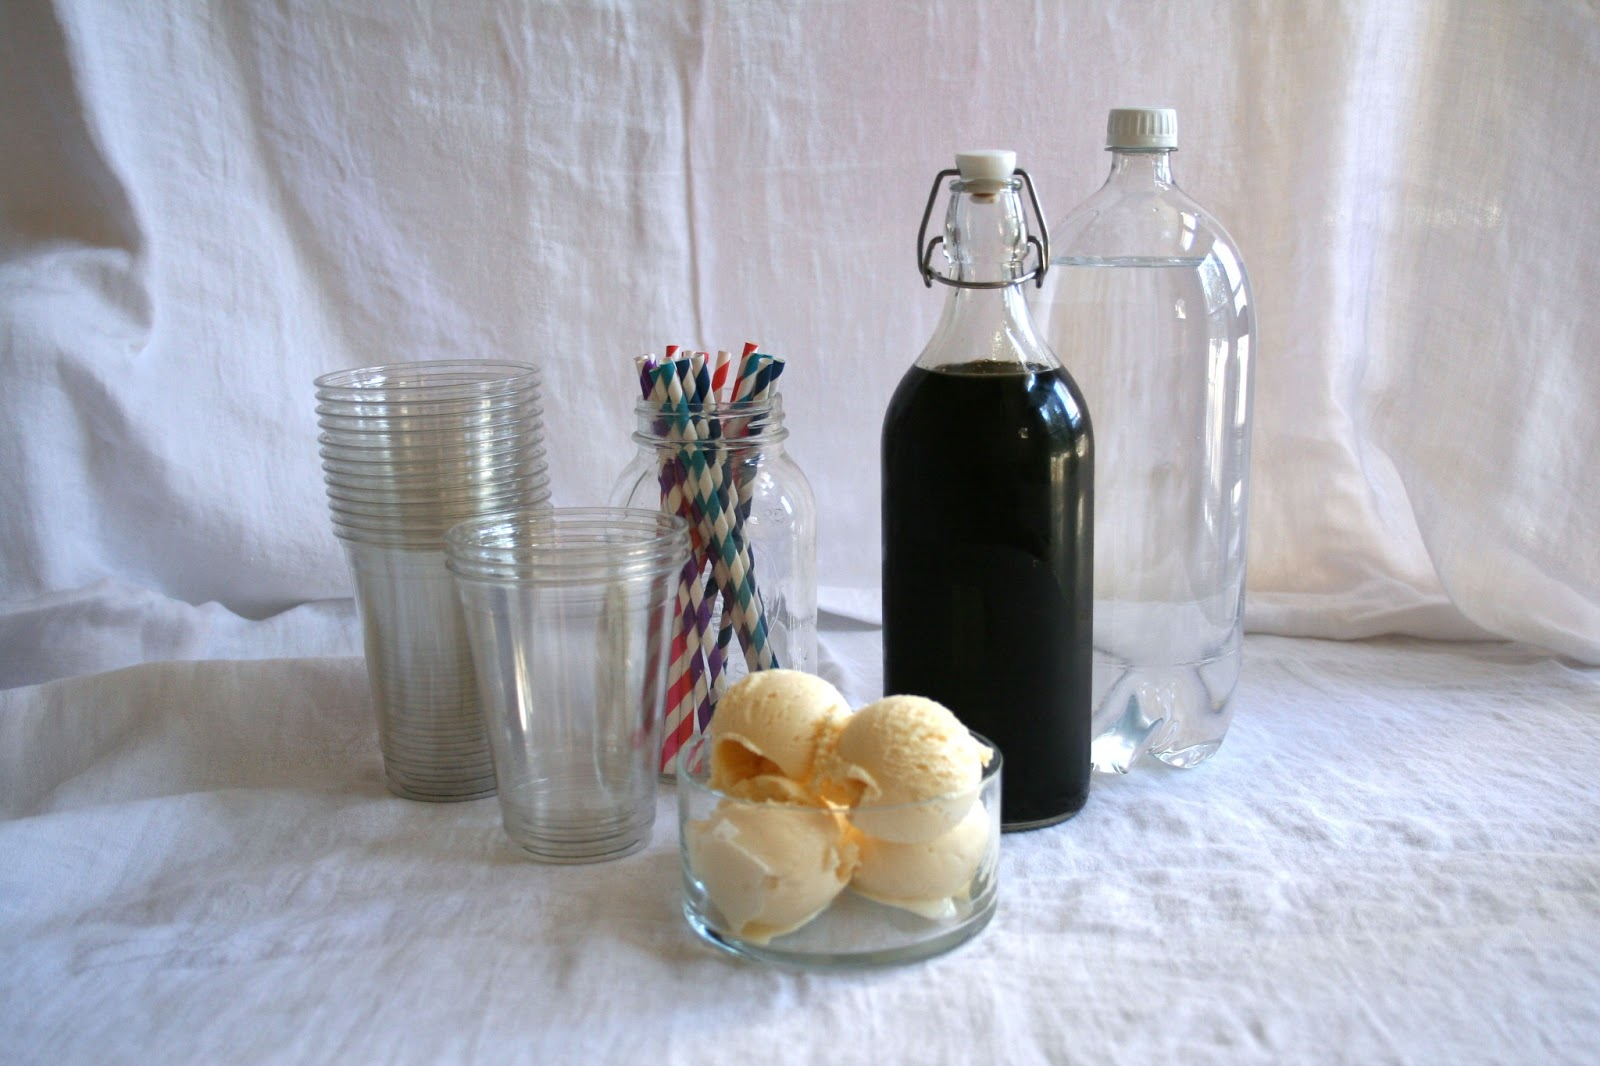 ... root beer floats with my homemade root beer. The floats were a hit